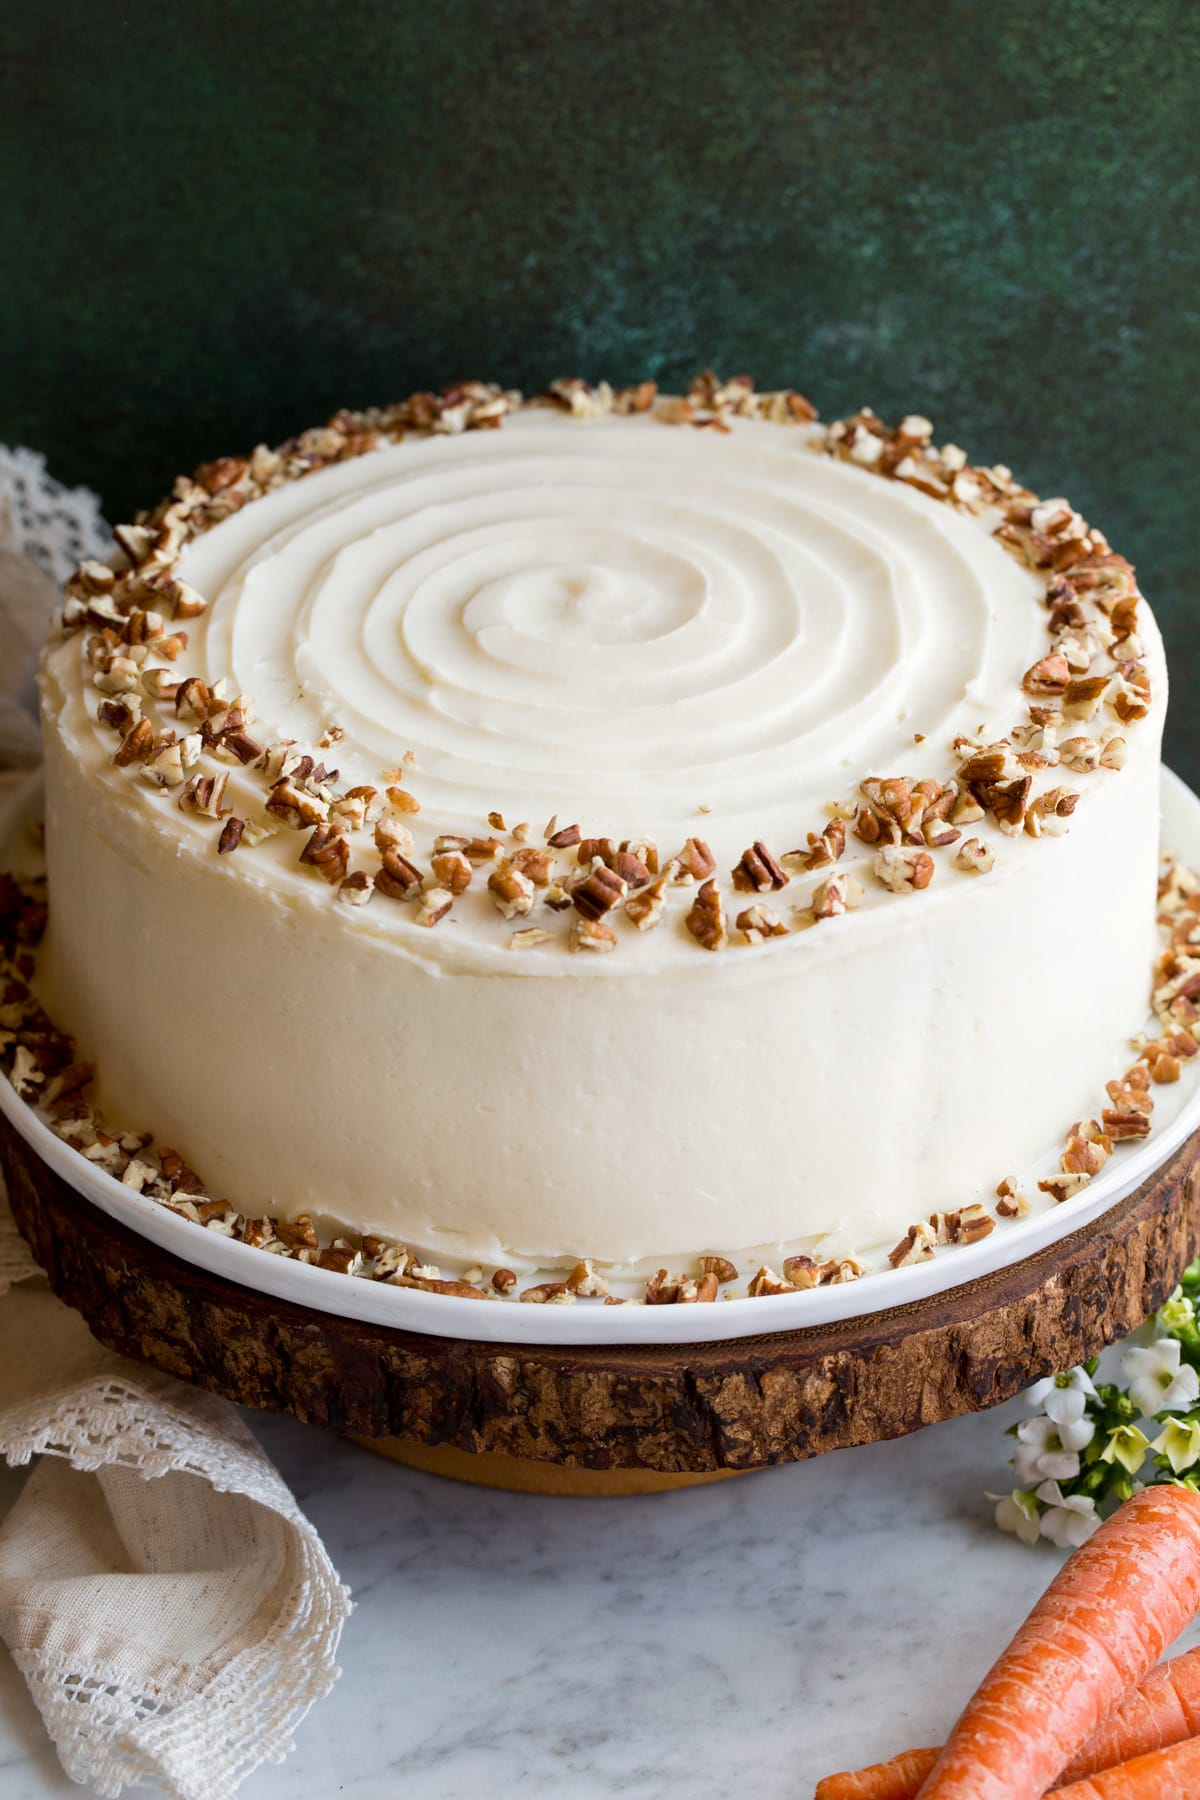 Whole carrot cake sitting on a wooden cake stand.